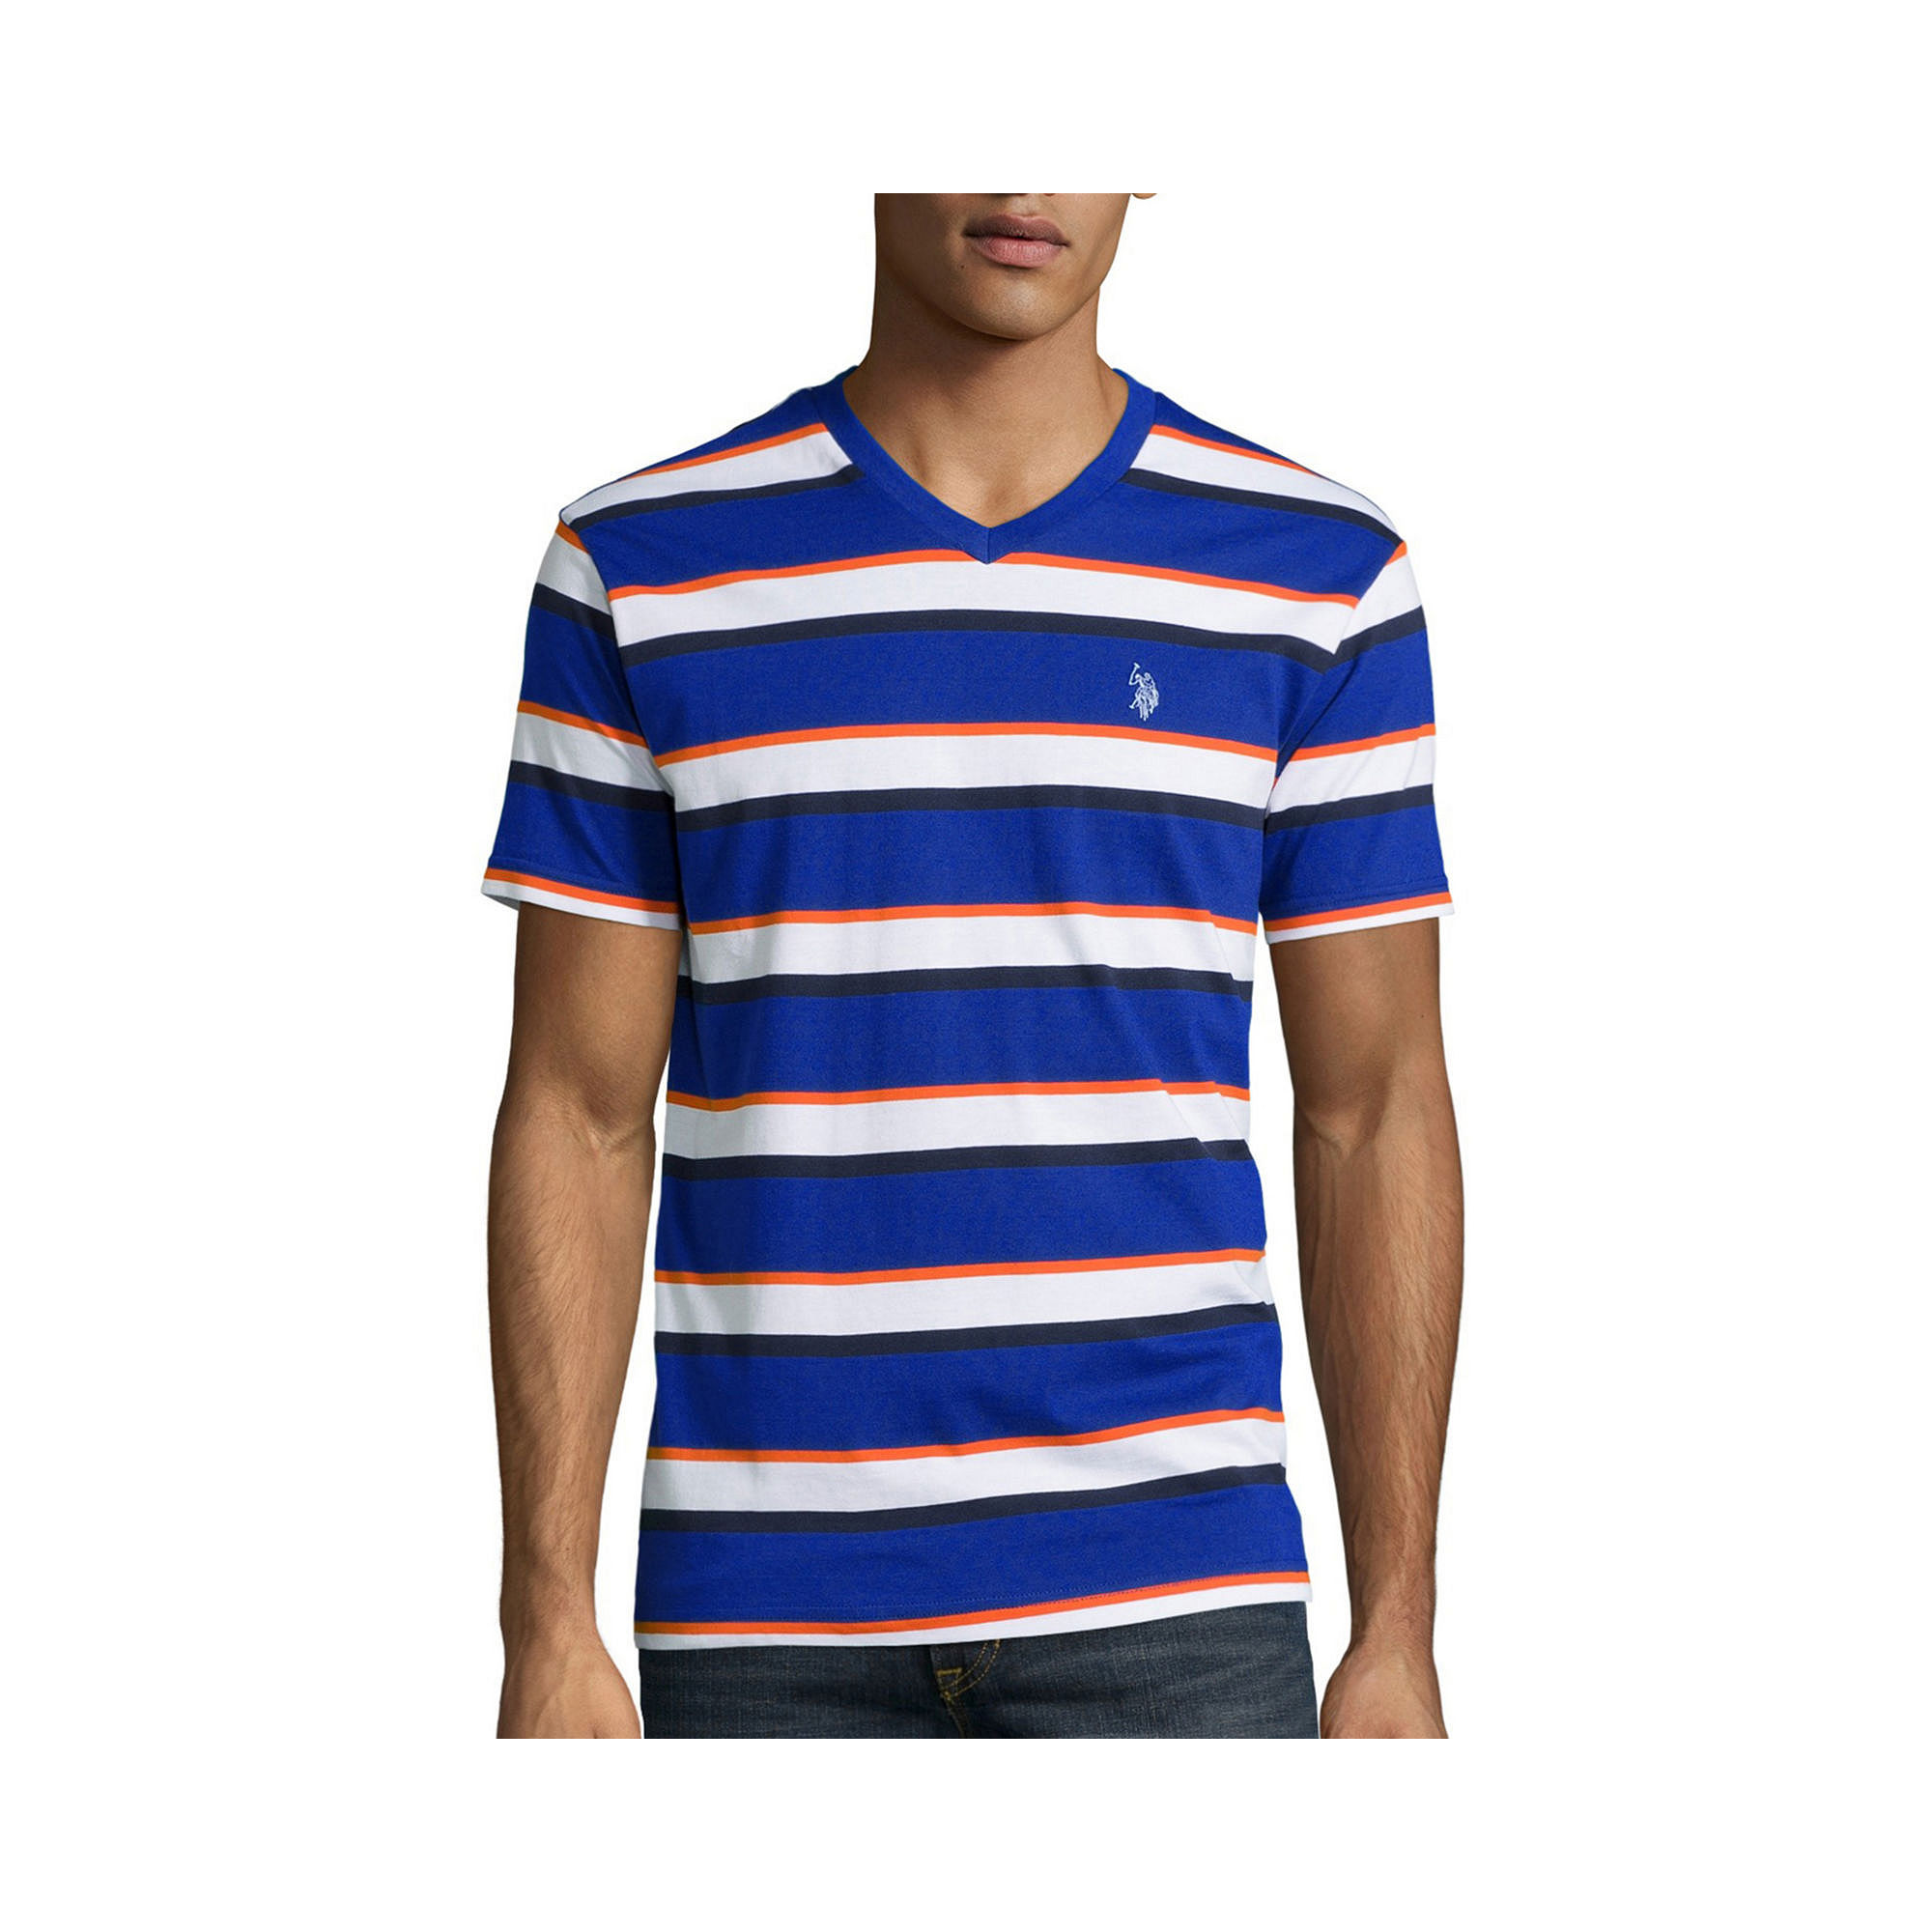 U.S. Polo Assn. Short-Sleeve Striped V-Neck Tee